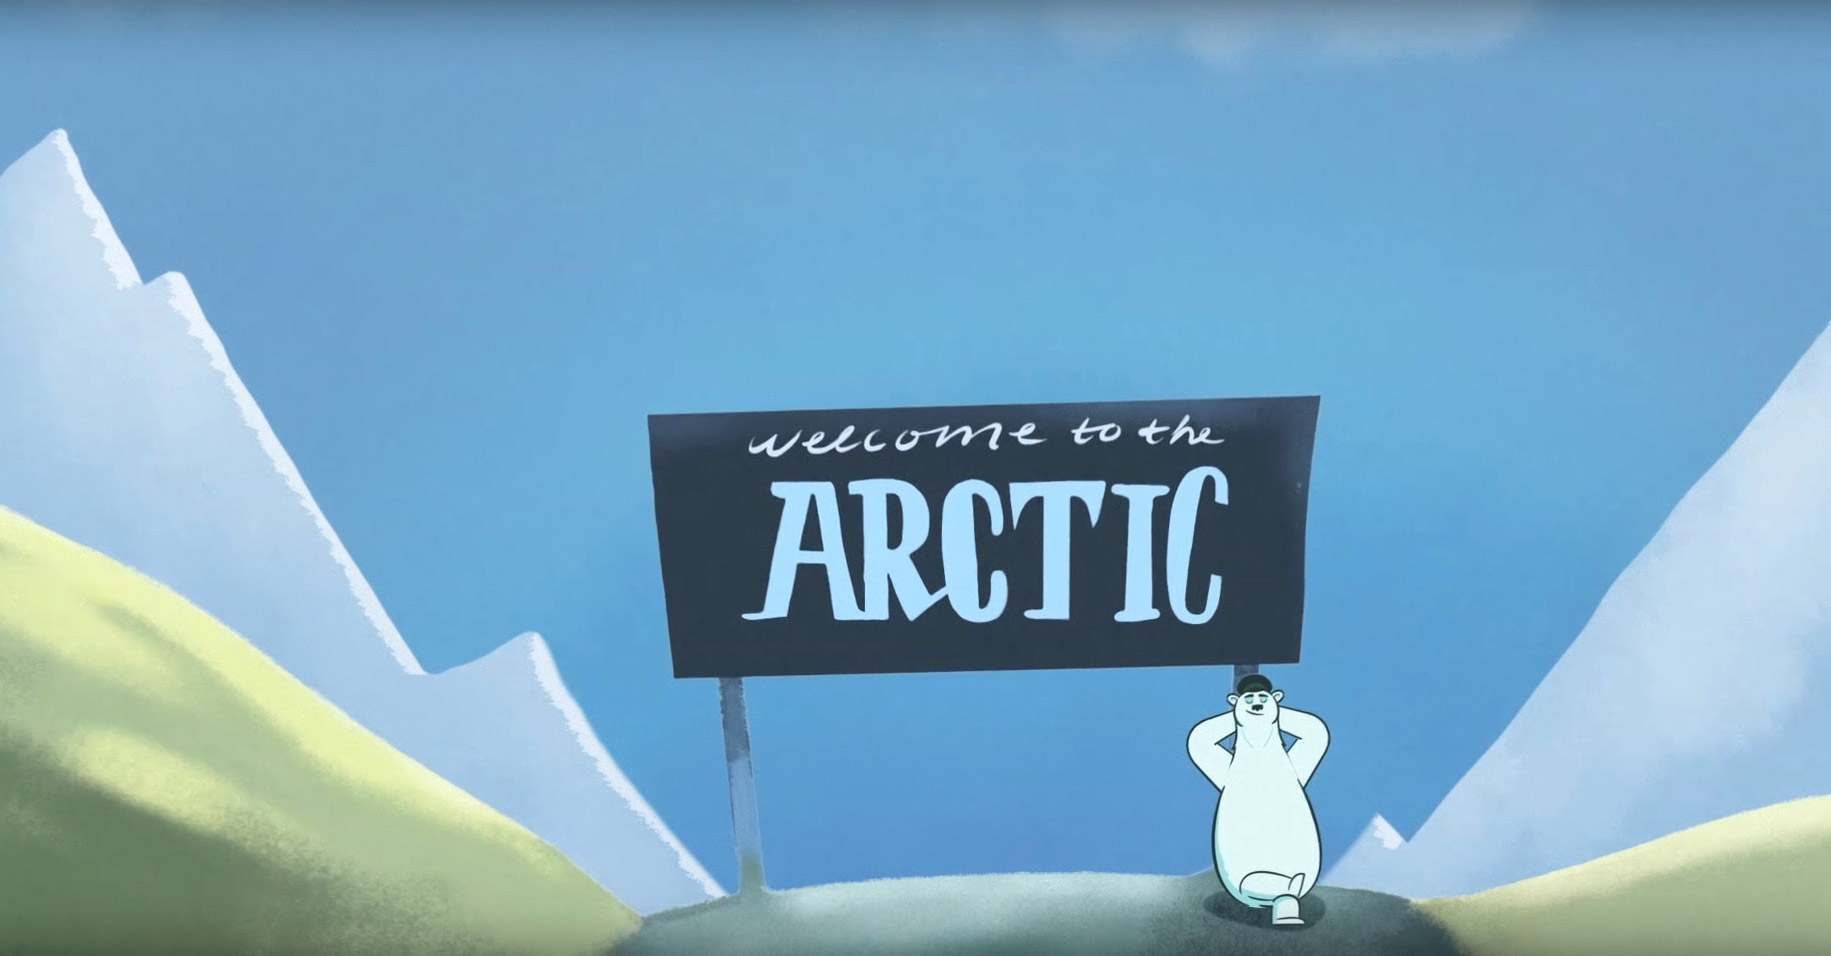 Welcome to the arctic - Arctic travel